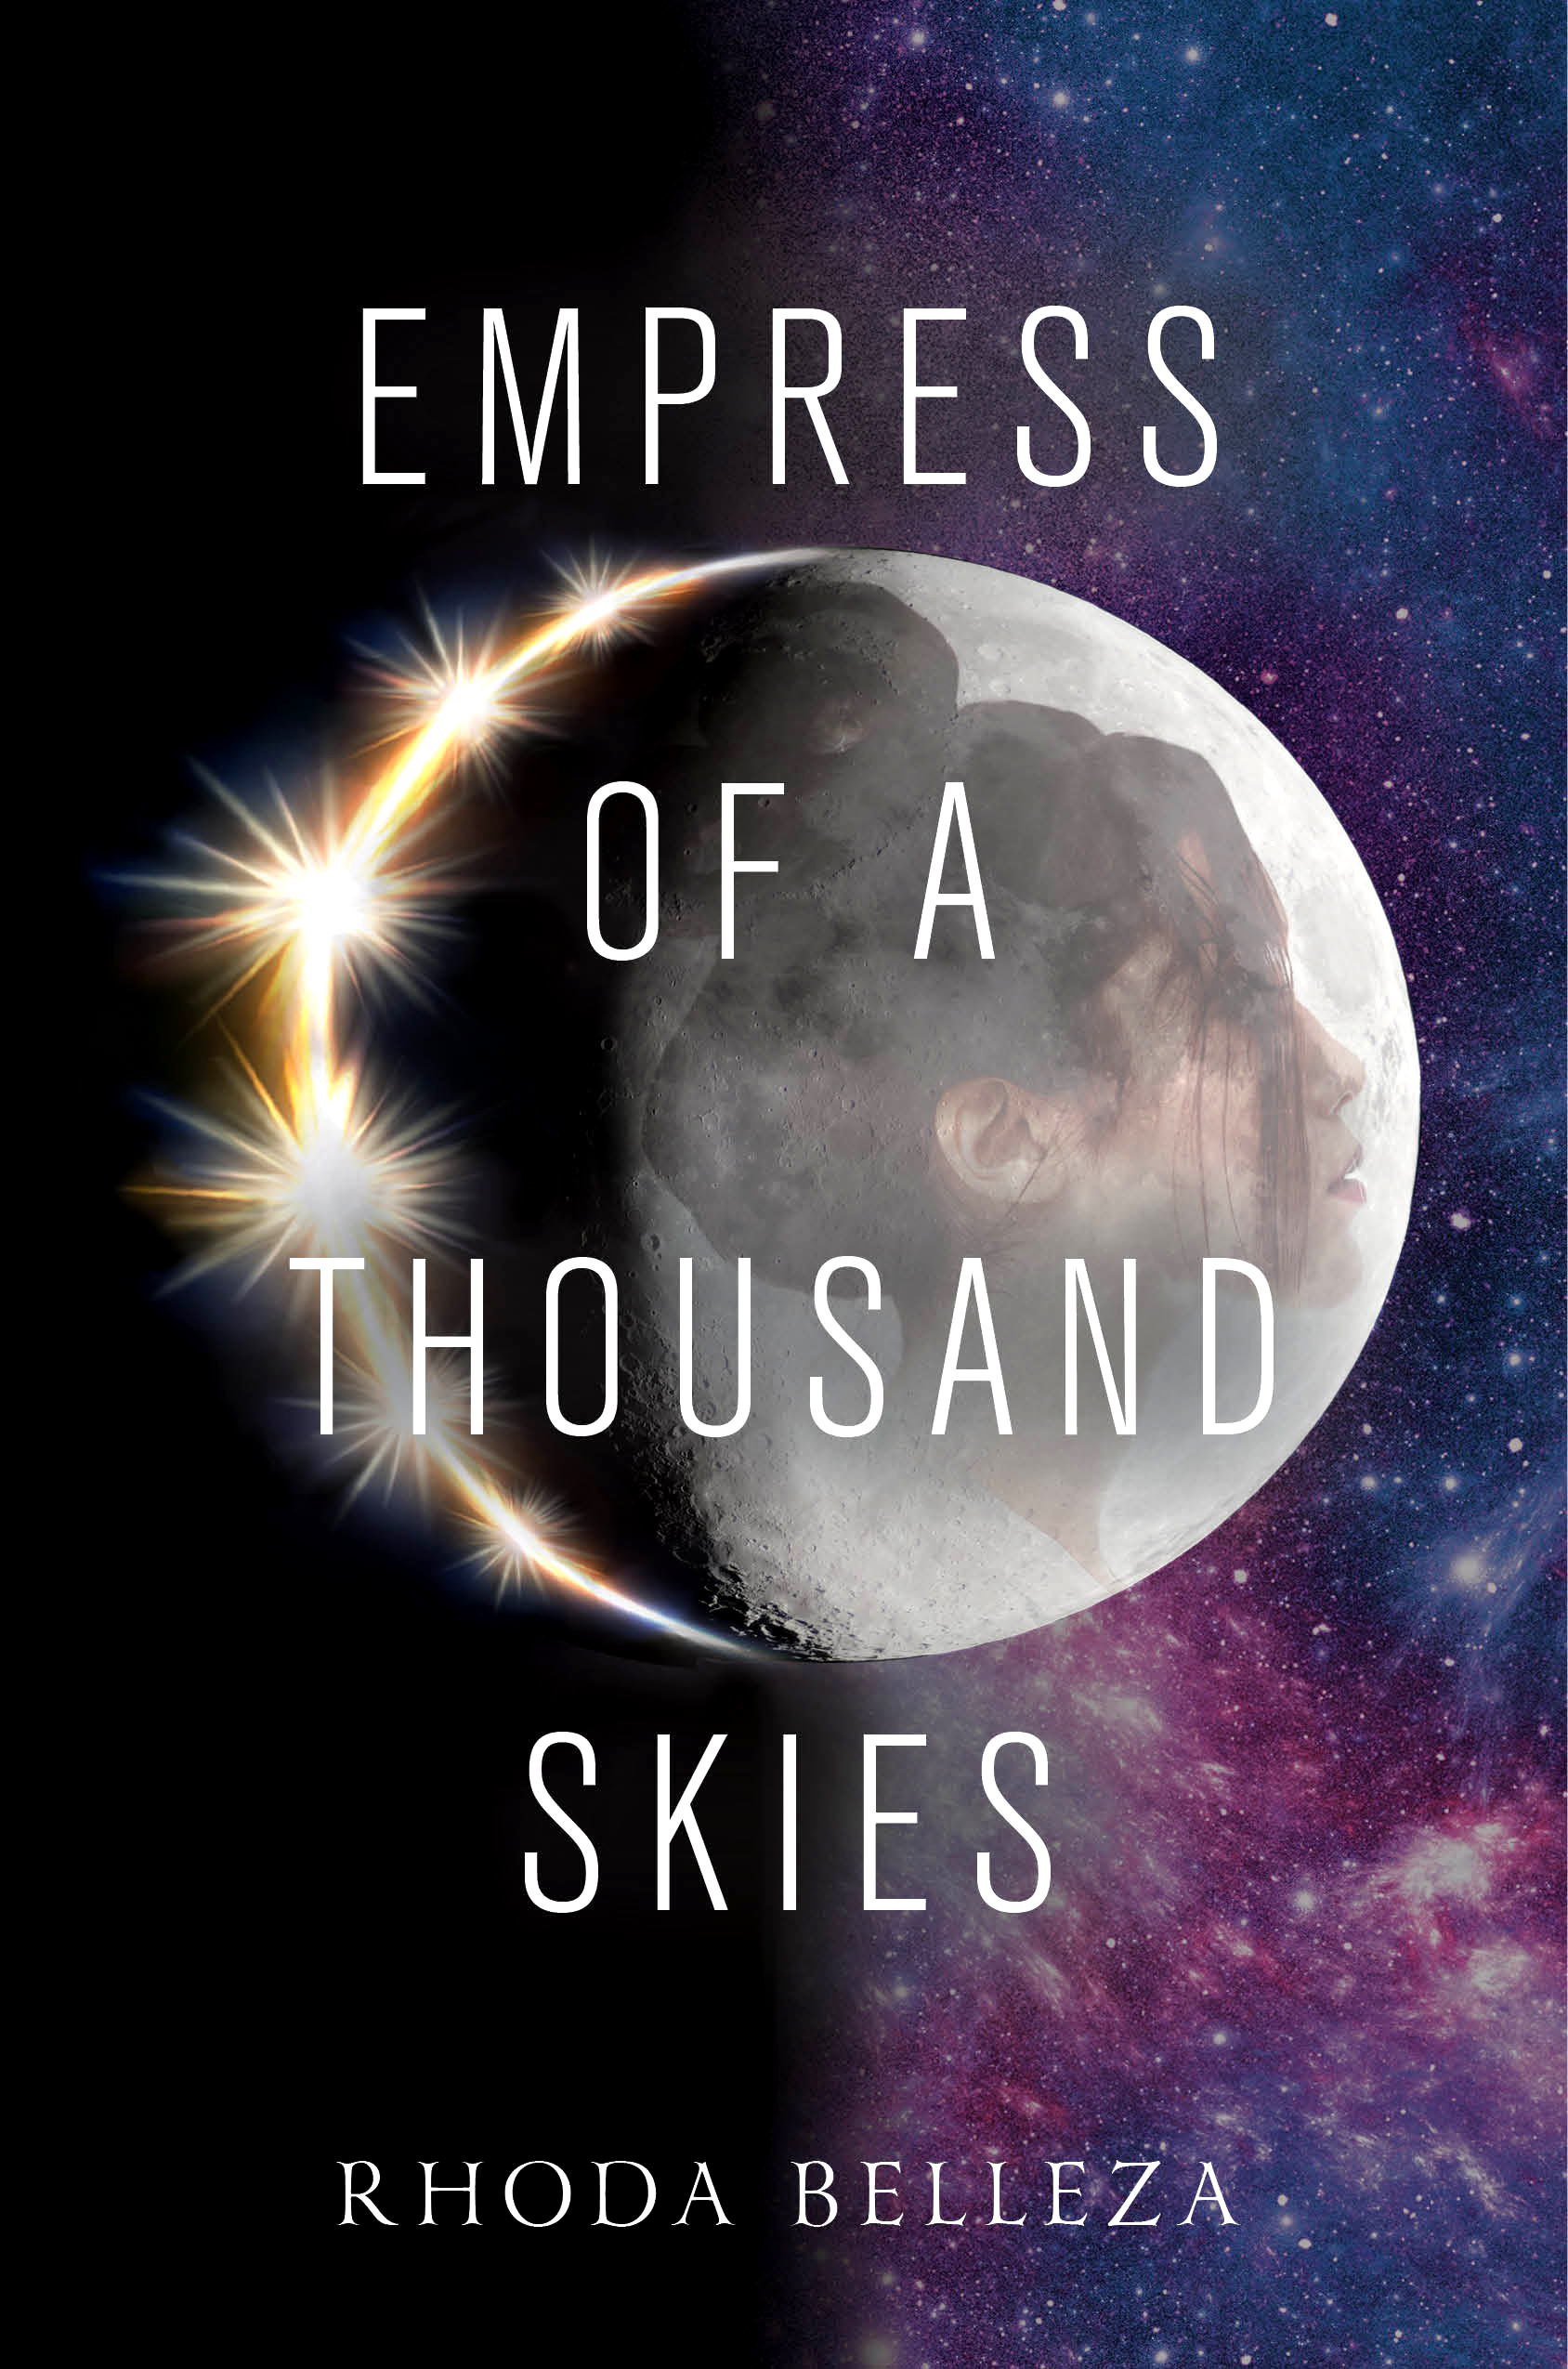 """Kirkus' Best Books of 2017  Junior Library Guild selection for EMPRESS OF A THOUSAND SKIES and sequel BLOOD OF A THOUSAND STARS  Scholastic Book Club Selection  Best Books of 2017 from Paste Magazine  Scholastic Book Club Selection  Fairy Loot Subscription Box Selection  """"An important and relevant novel."""" –  The New York Times   """"An exceptionally satisfying series opener.""""  – Kirkus, starred review    Goodreads »"""